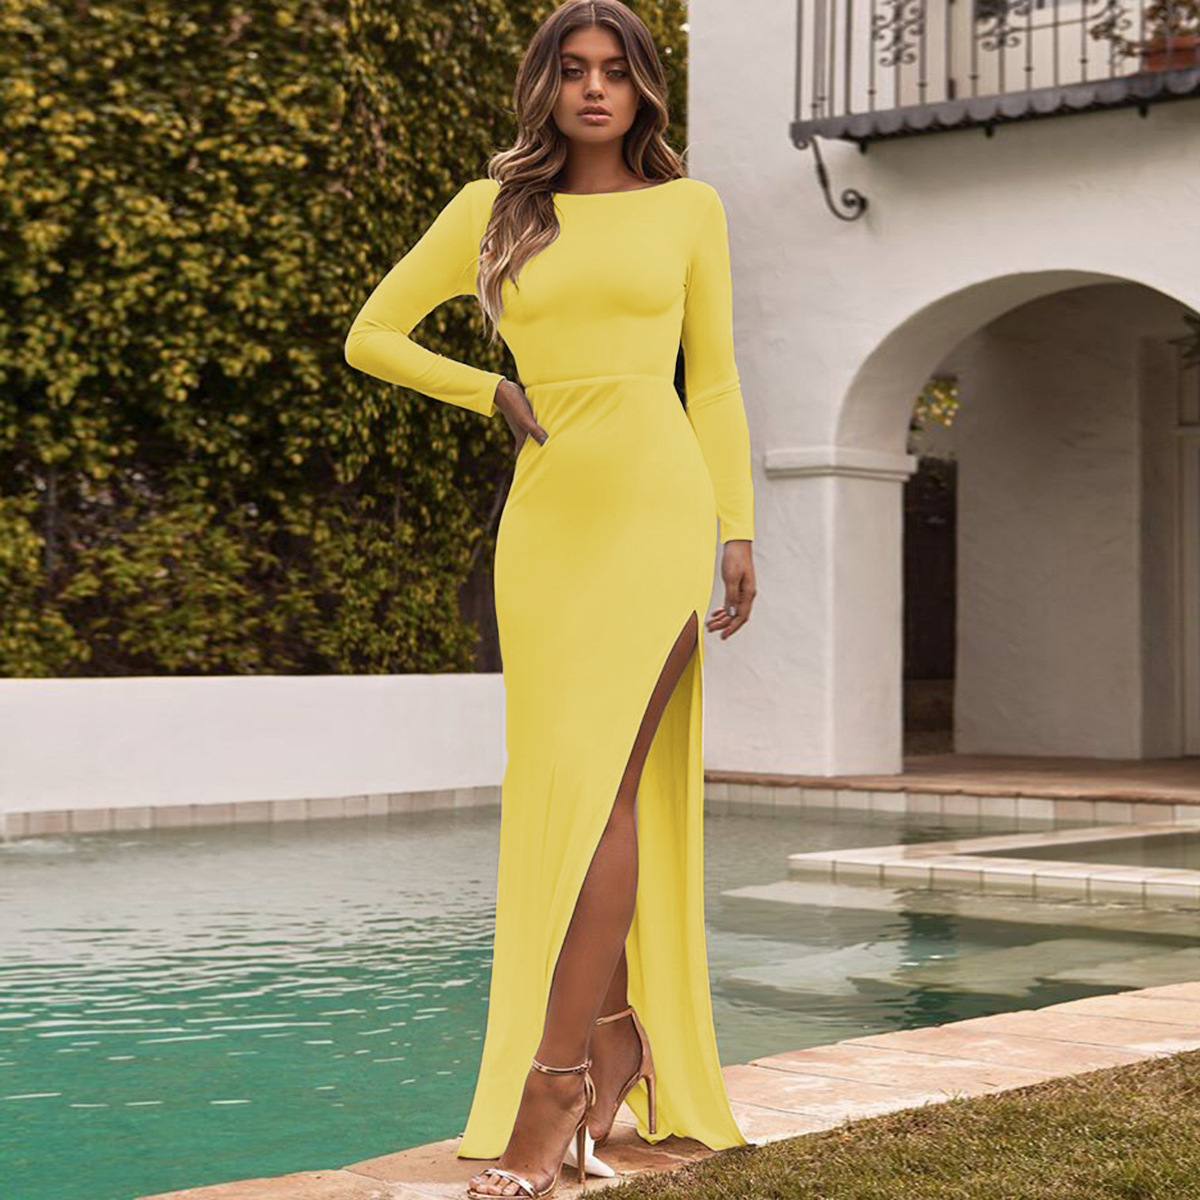 b9d32213a638 Women Slim Maxi Dress Sexy Long Sleeve Backless Split Bodycon Long Night  Club Party Dress yellow